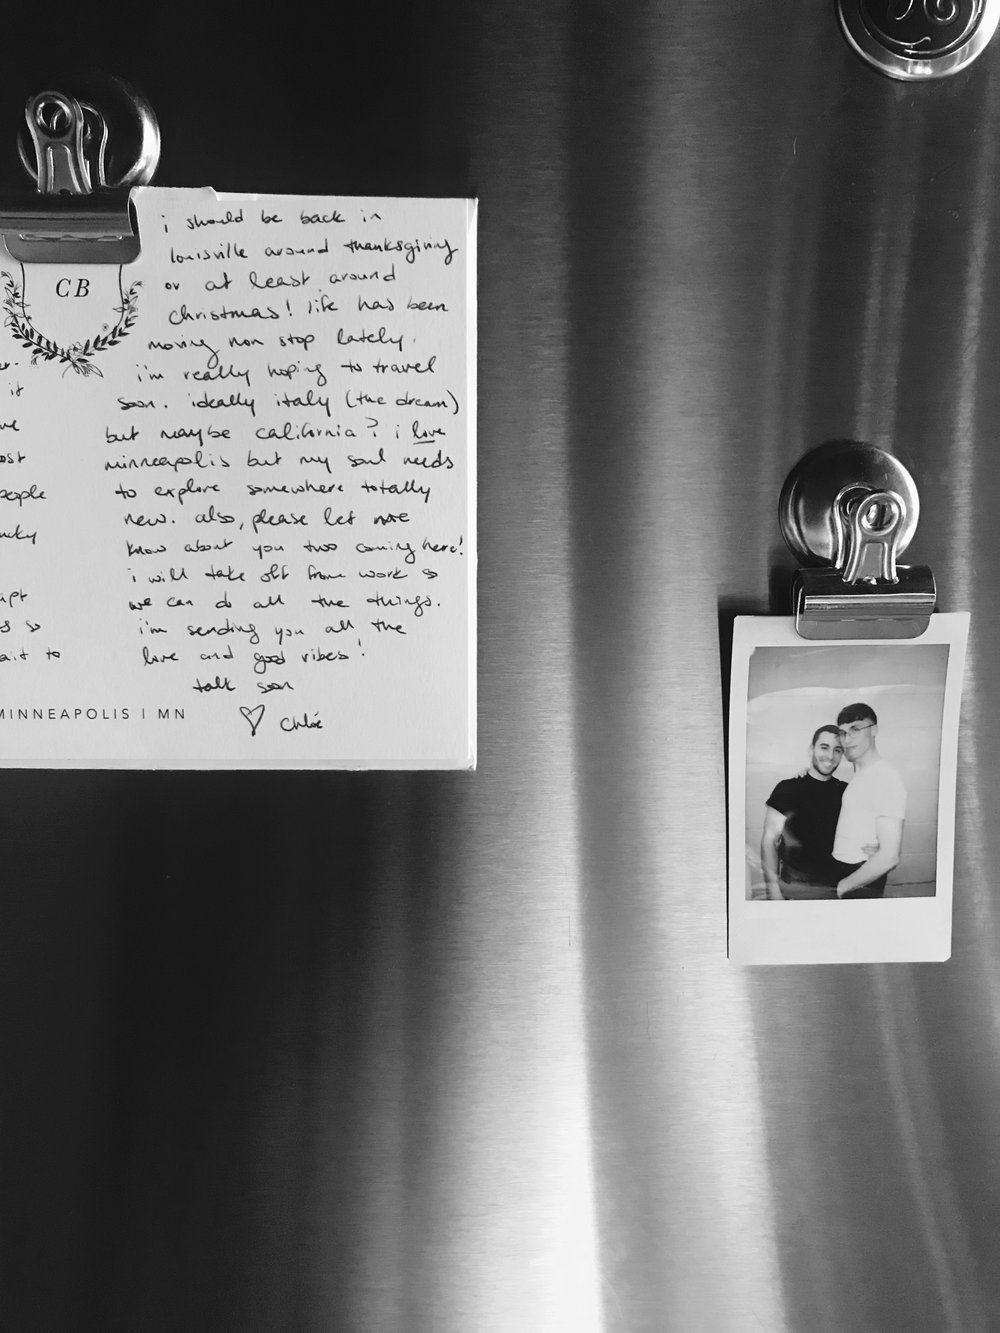 Our very bare fridge is slowly getting more personal.